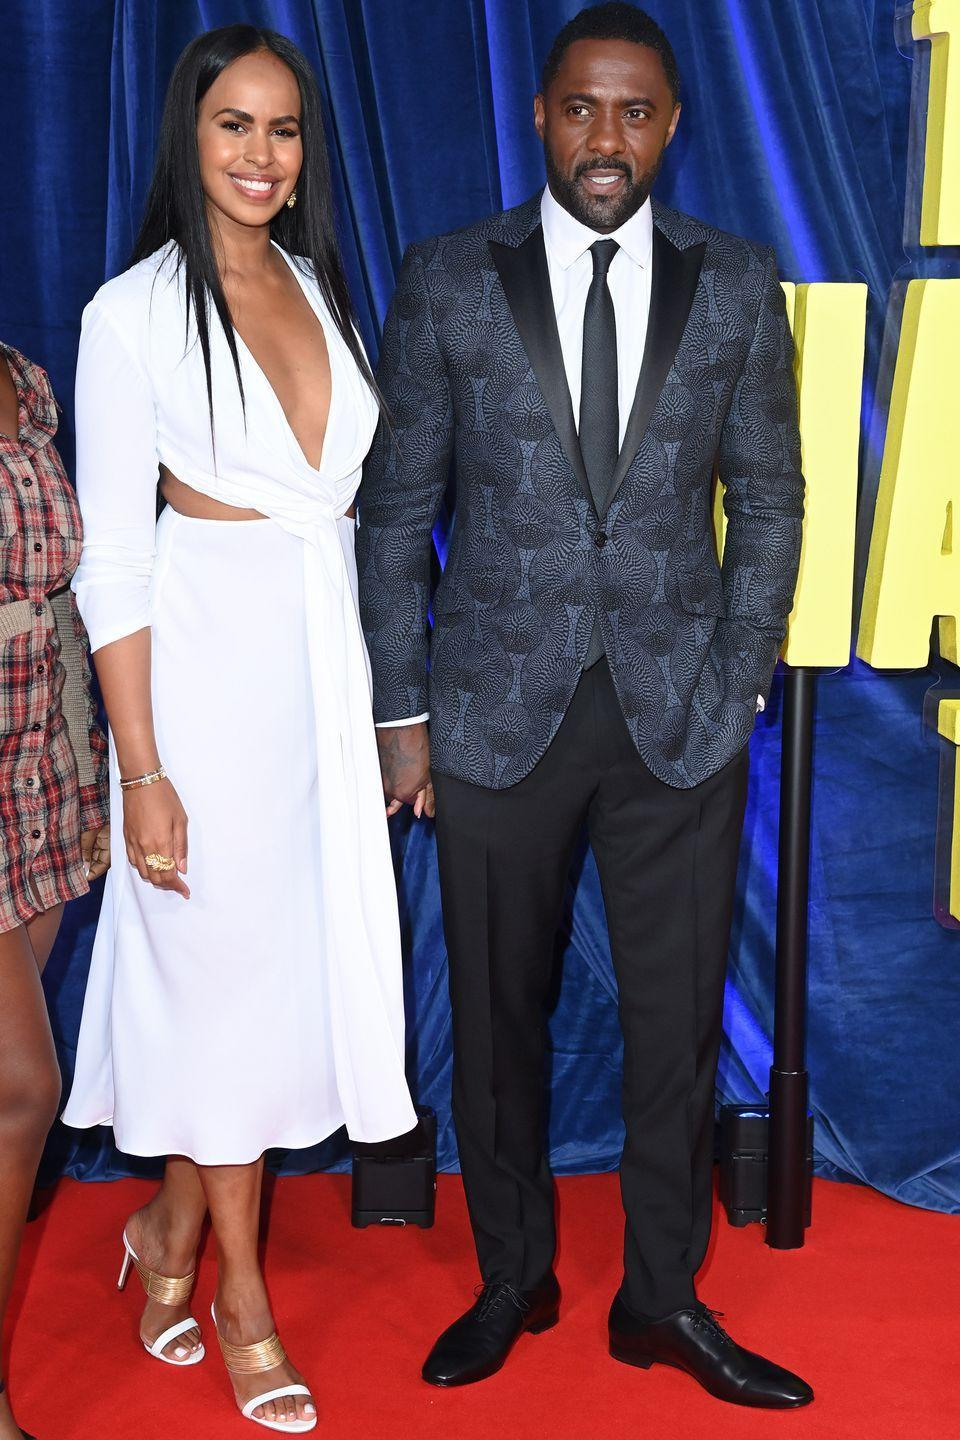 <p><strong>6 October</strong></p><p>Sabrina Dhowre Elba, in Alberta Ferretti, and Idris Elba posed together on the red carpet. </p>